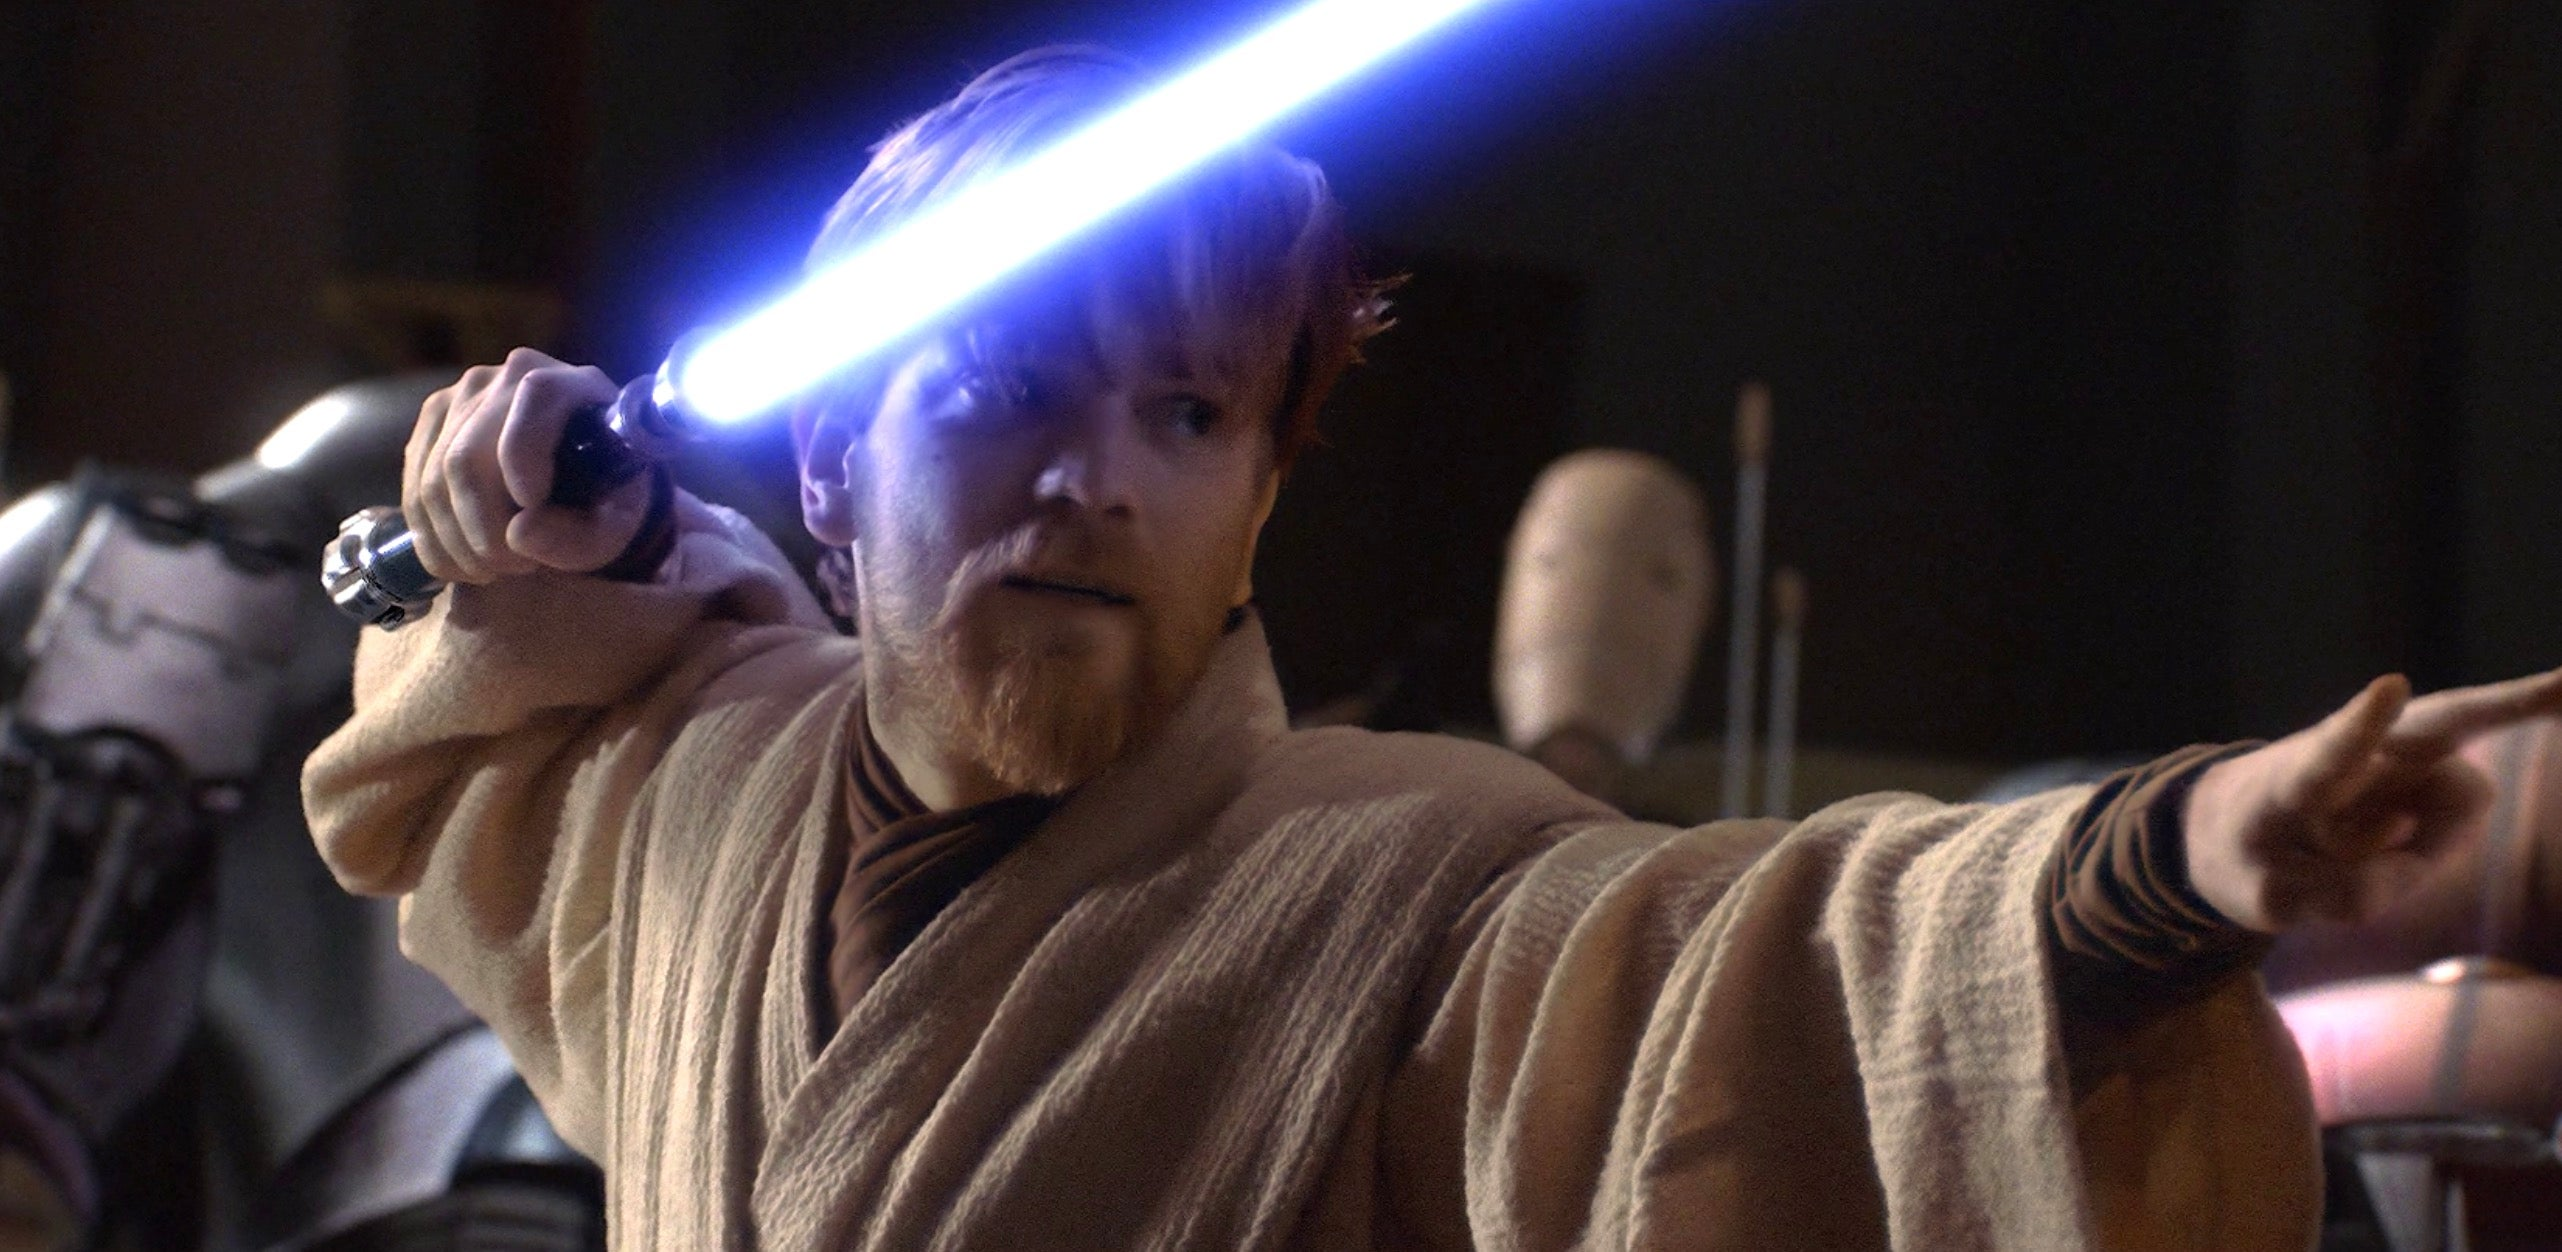 The Lightsabers Of Star Wars, Ranked